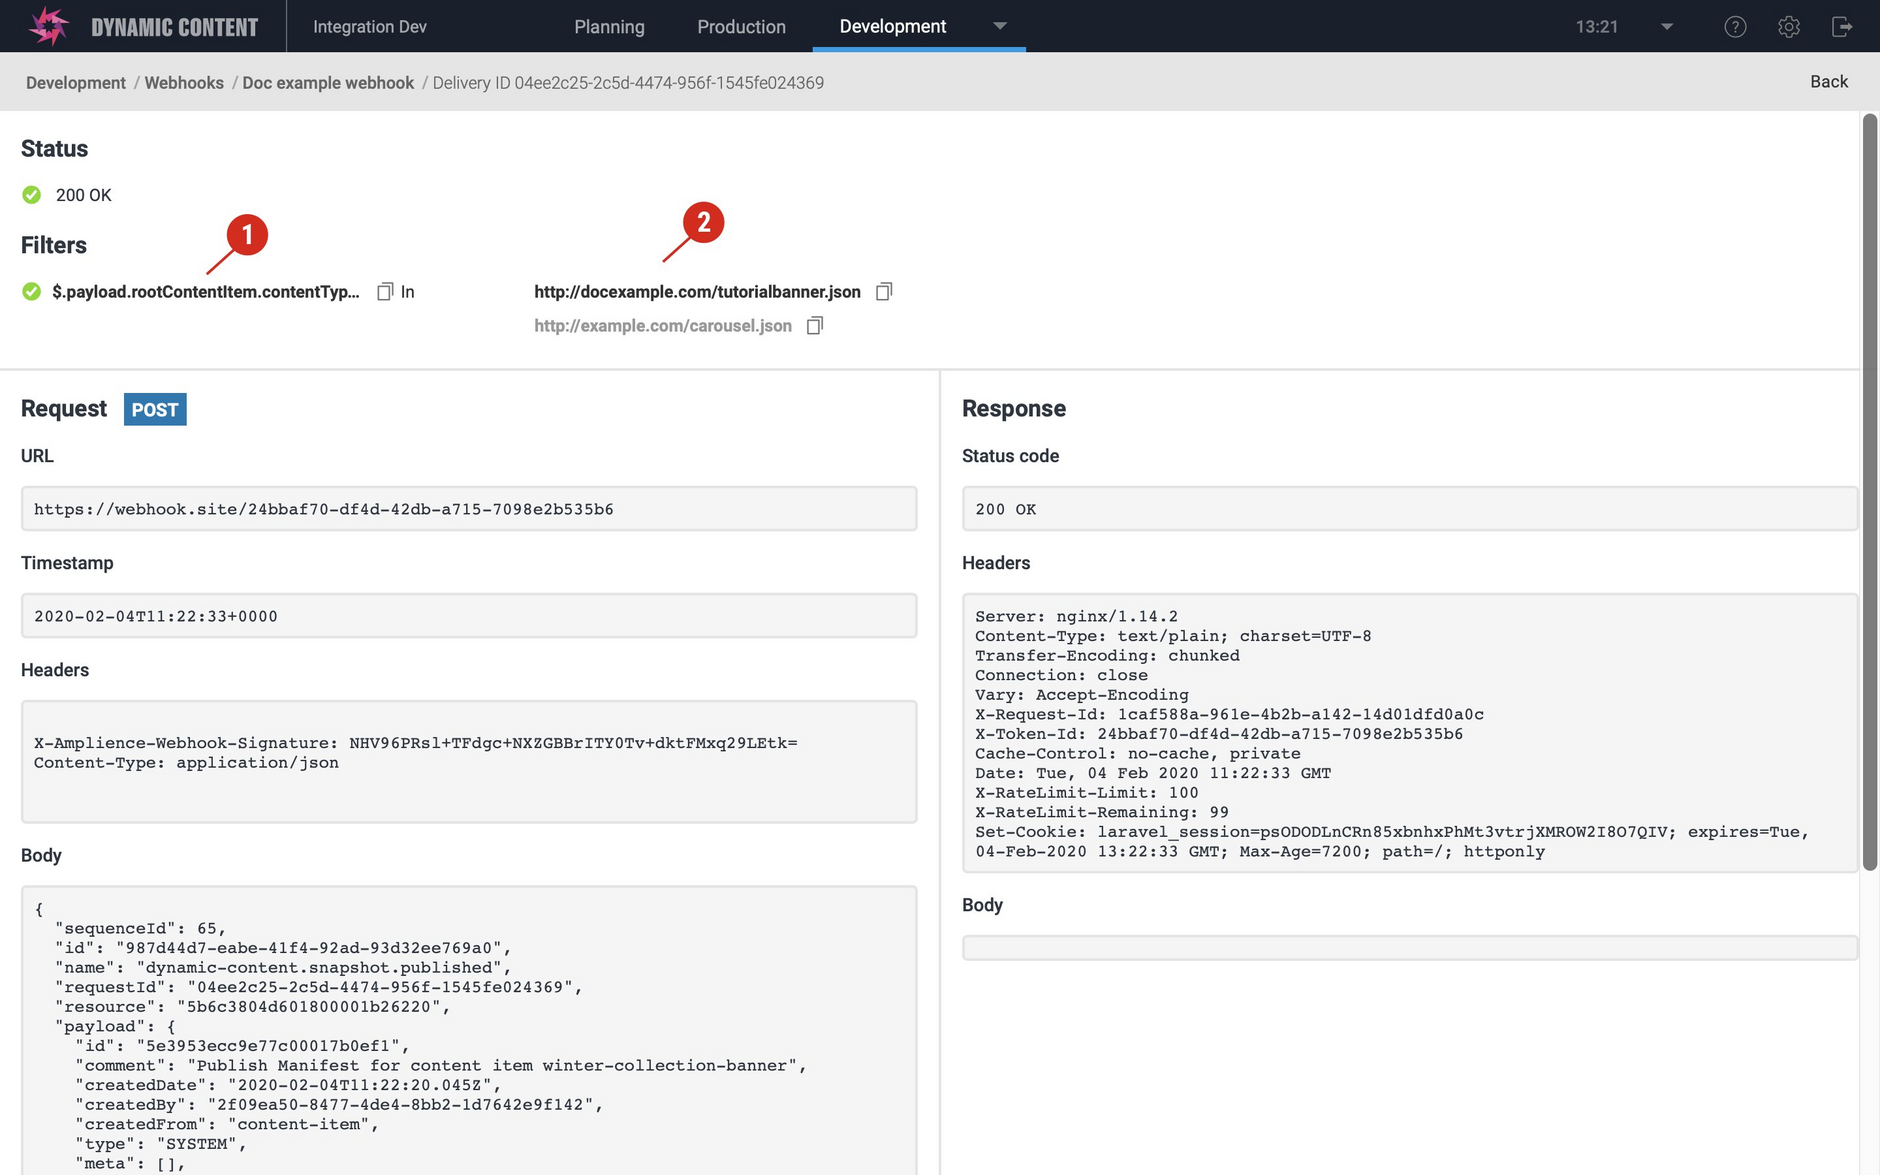 Viewing the webhook details including the filter that matched.